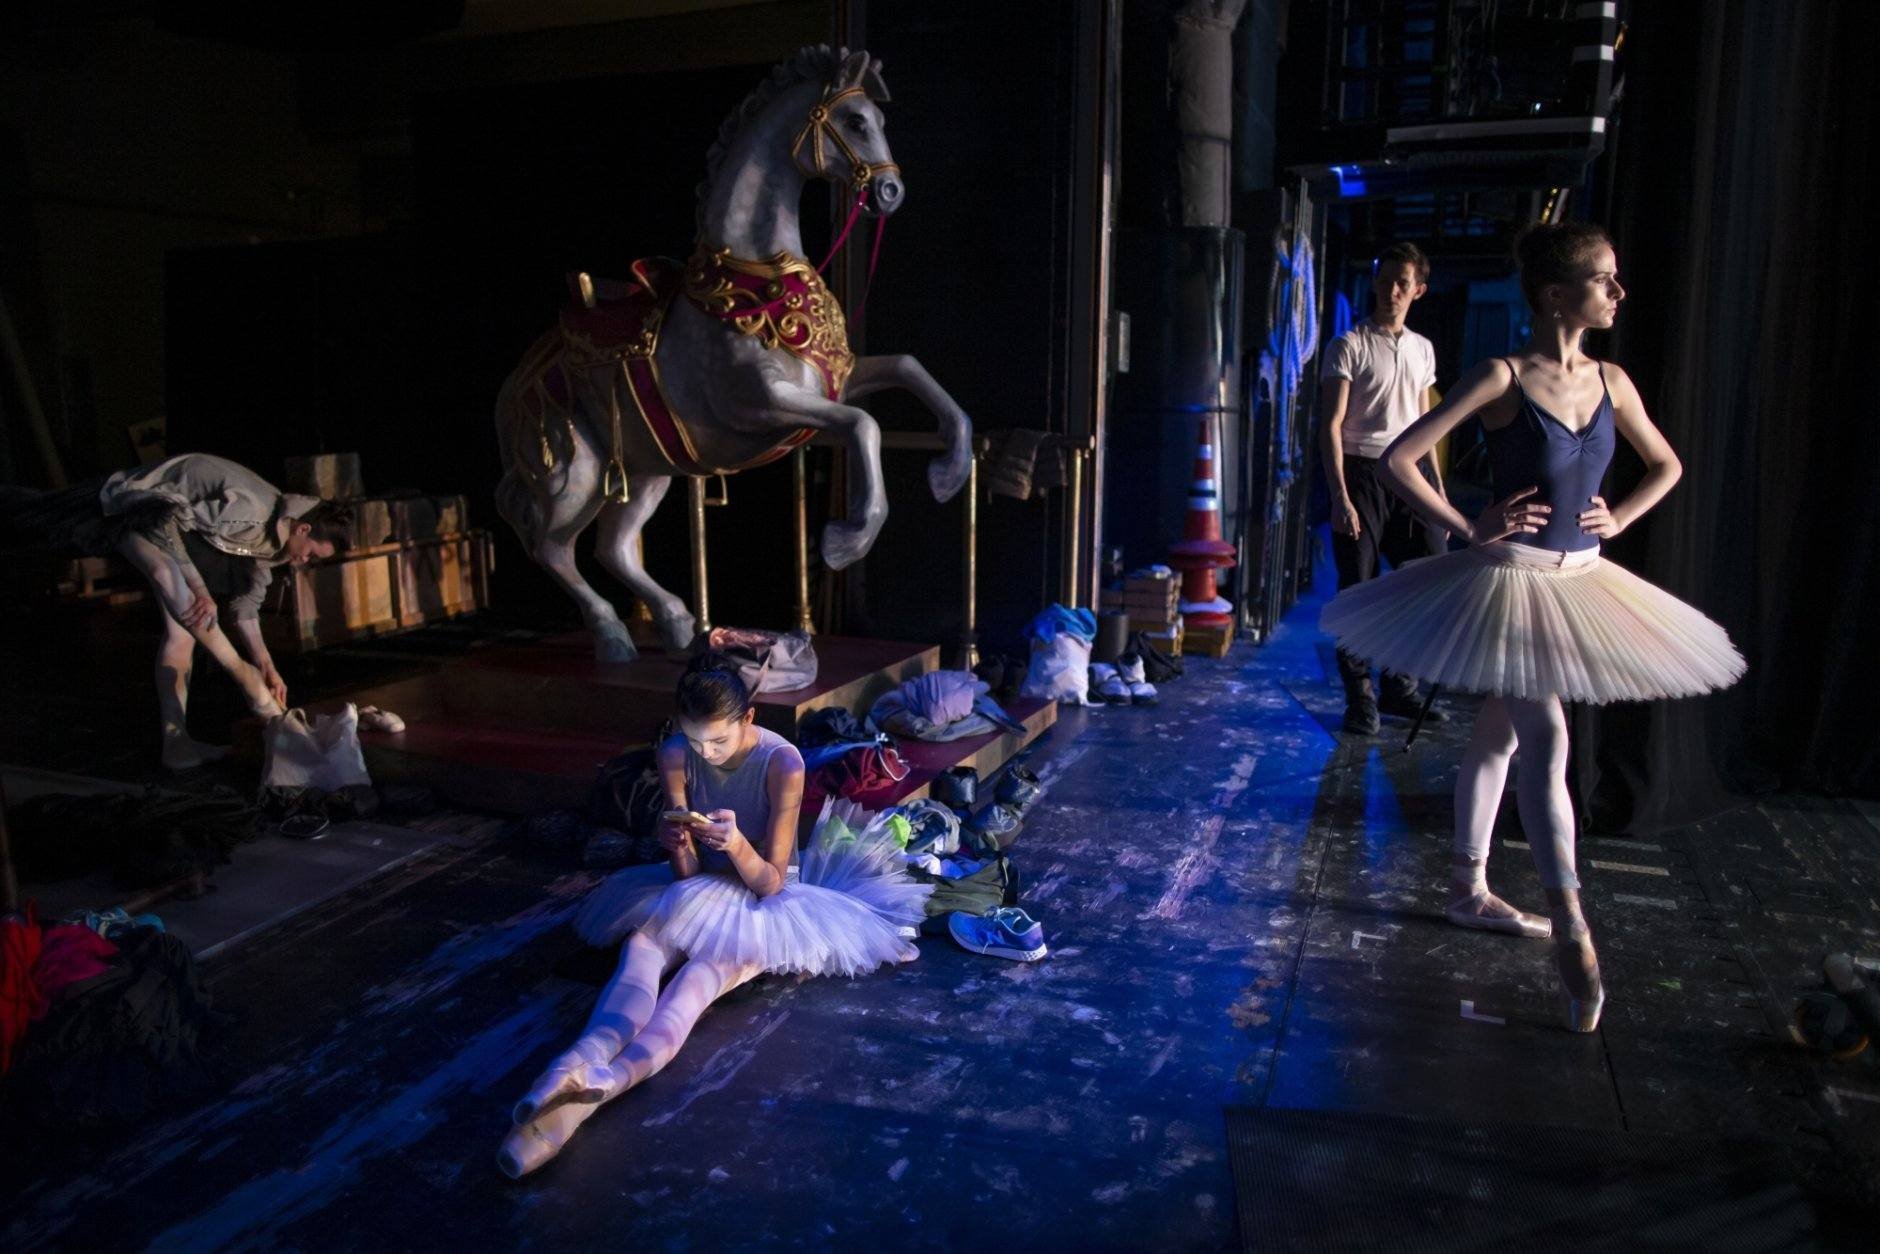 In this photo taken on Tuesday, June 11, 2019, a ballerina looks at her smartphone as others prepare for a performance during a rehearsal in the Bolshoi Theater in Moscow, Russia. Backstage, the dancers warm up, chalk their ballet shoes, or sit checking their social media, but once onstage, the ballet director at the Bolshoi Makhar Vaziev is an exacting ballet master who scrutinizes technique closely and spares no one's feelings if he sees a mistake.  (AP Photo/Alexander Zemlianichenko)